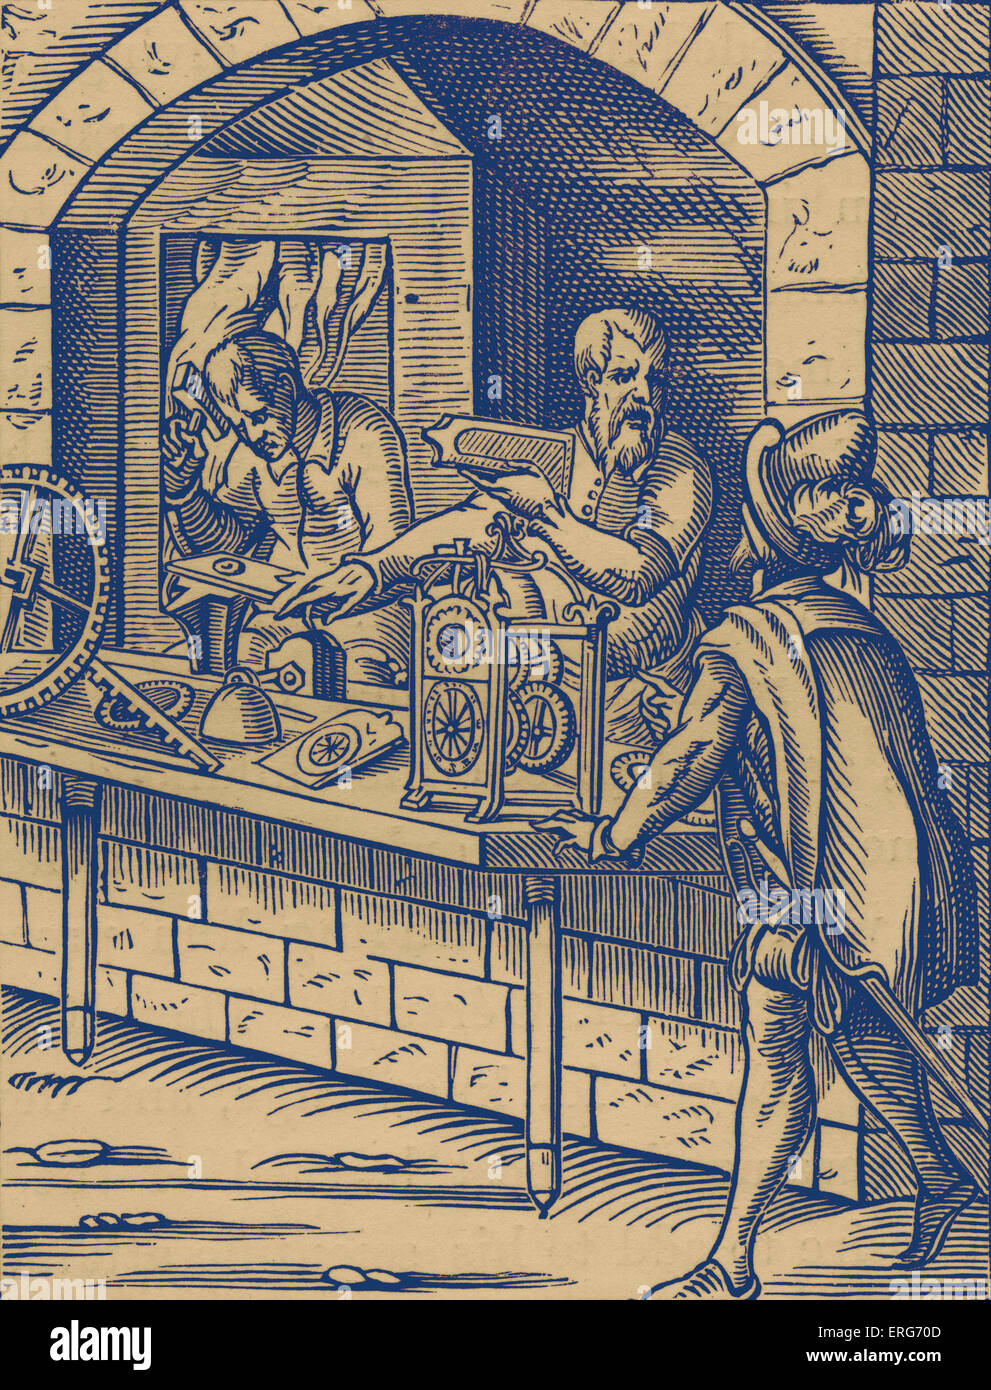 Clockmaker by Jost Amman, reproduced from a sixteenth century engraving. Swiss artist, 13 June, 1539 - 17 March, - Stock Image